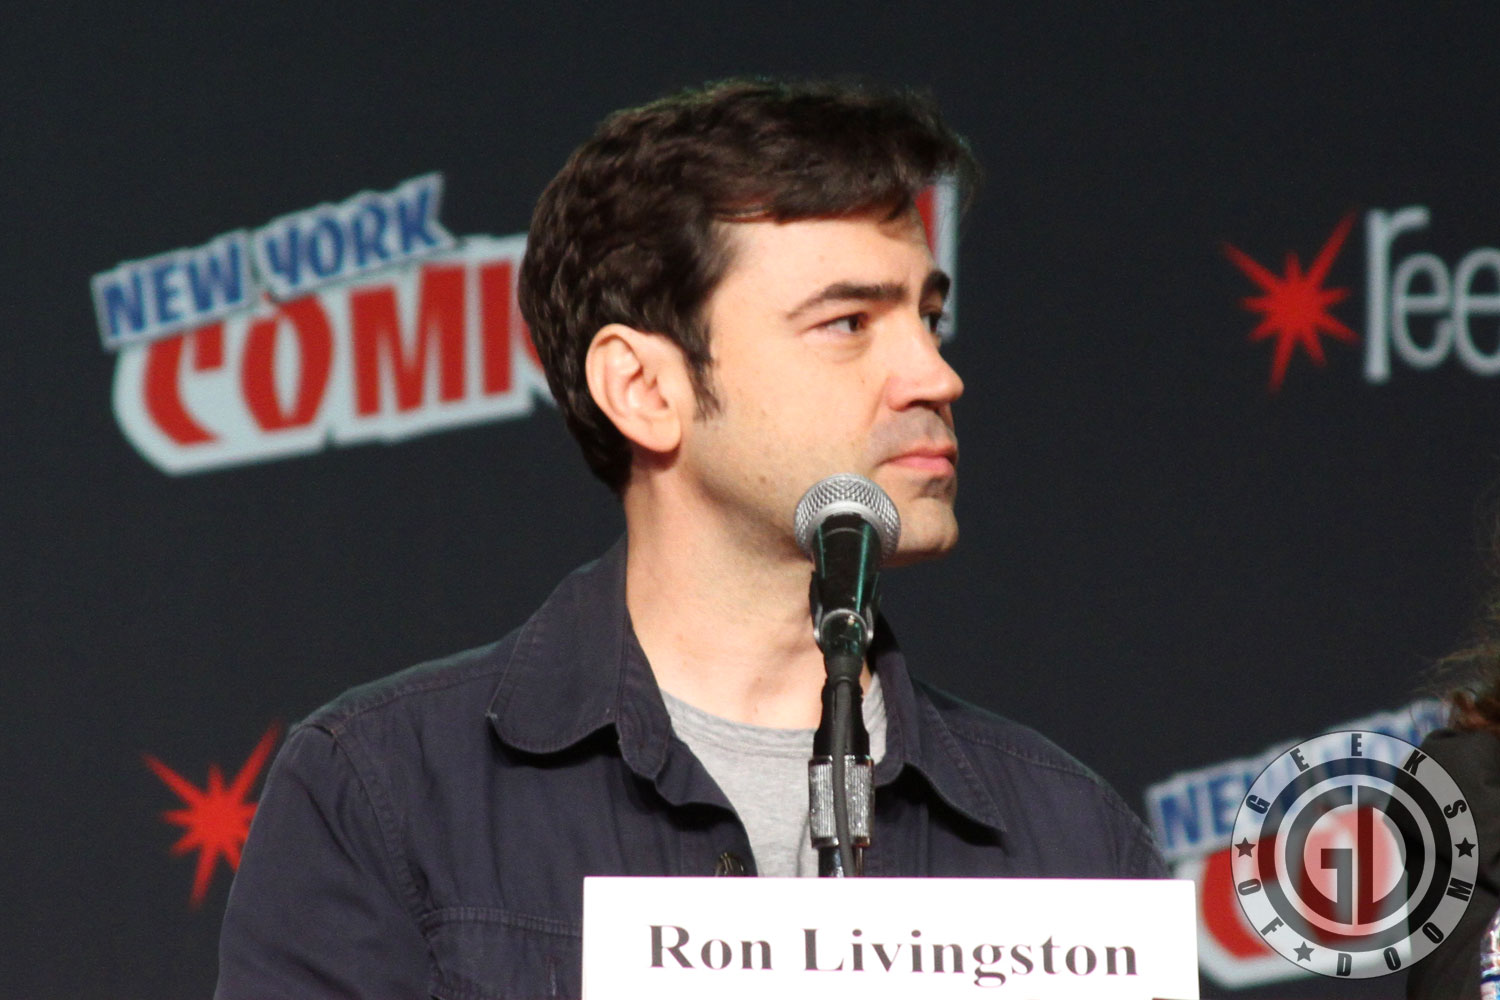 ron livingston family guy